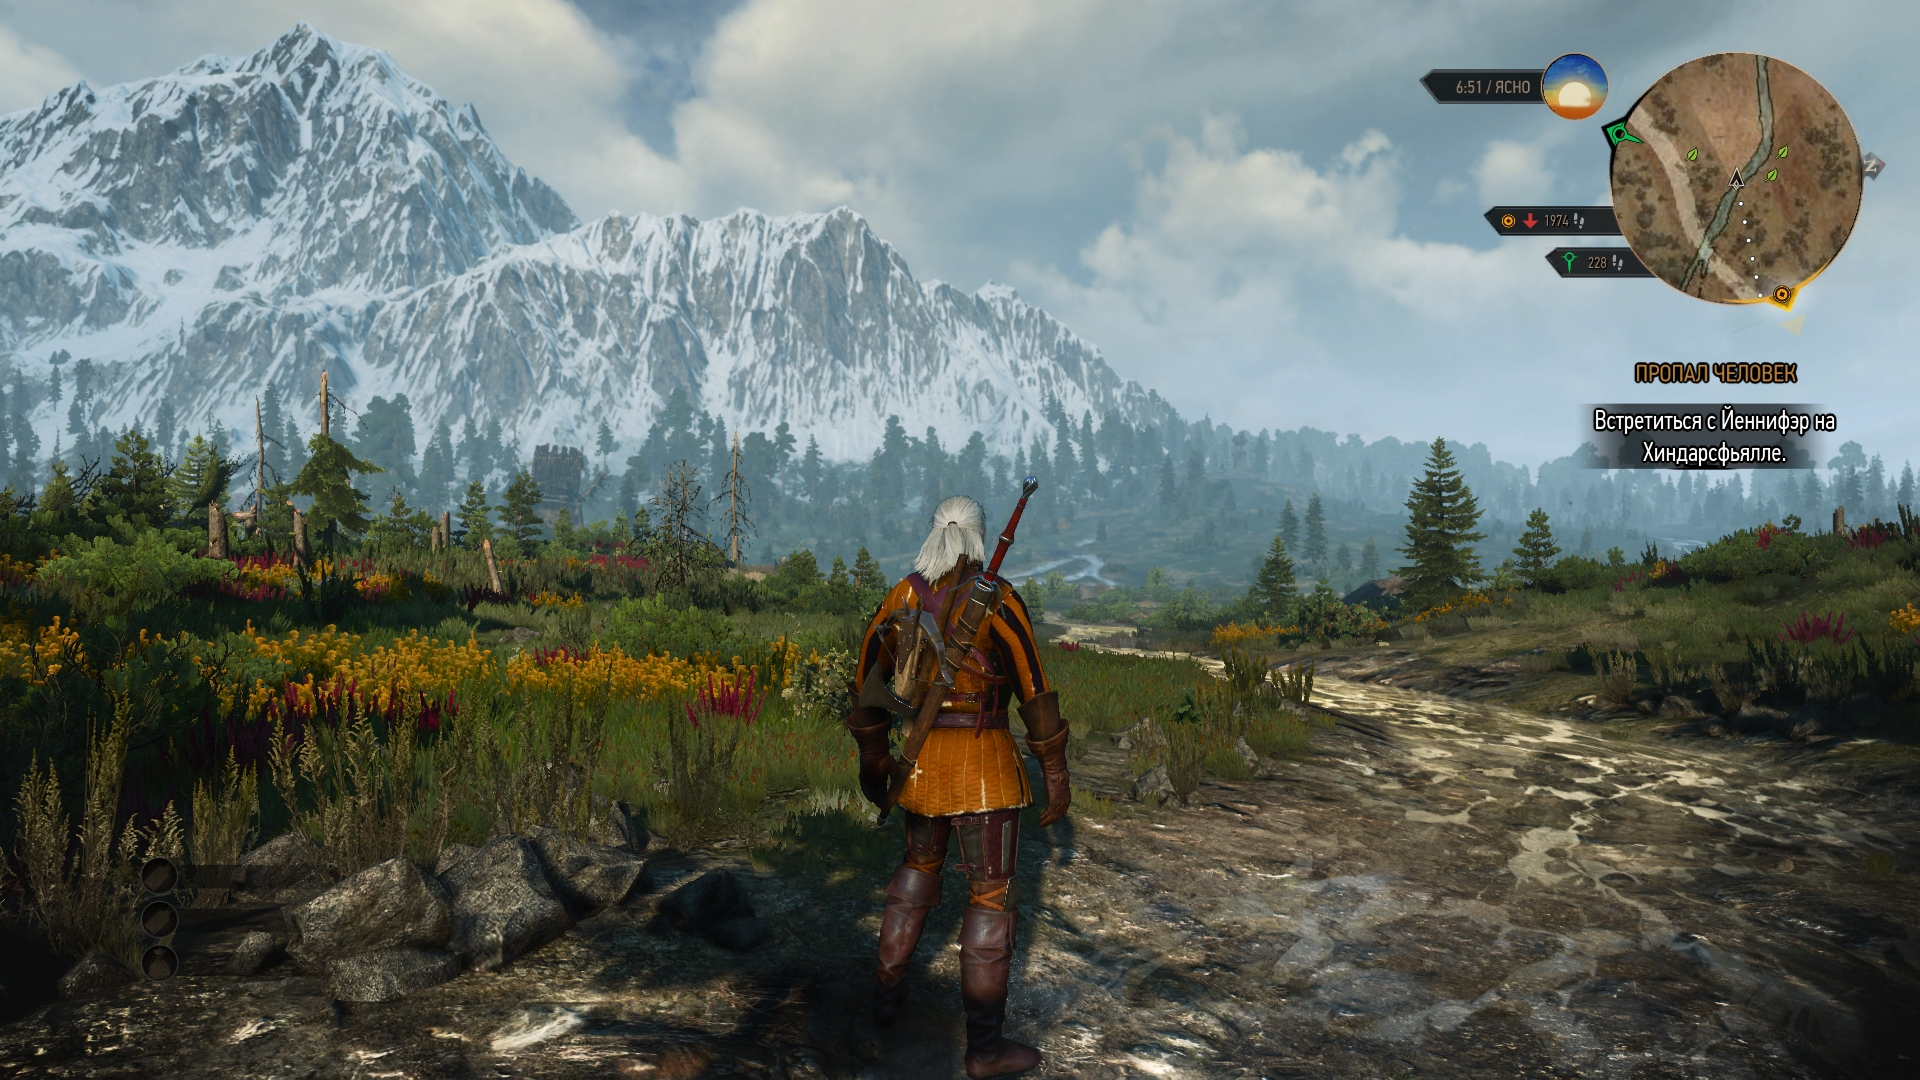 witcher3 2016-10-16 19-51-19-09.jpg - Witcher 3: Wild Hunt, the